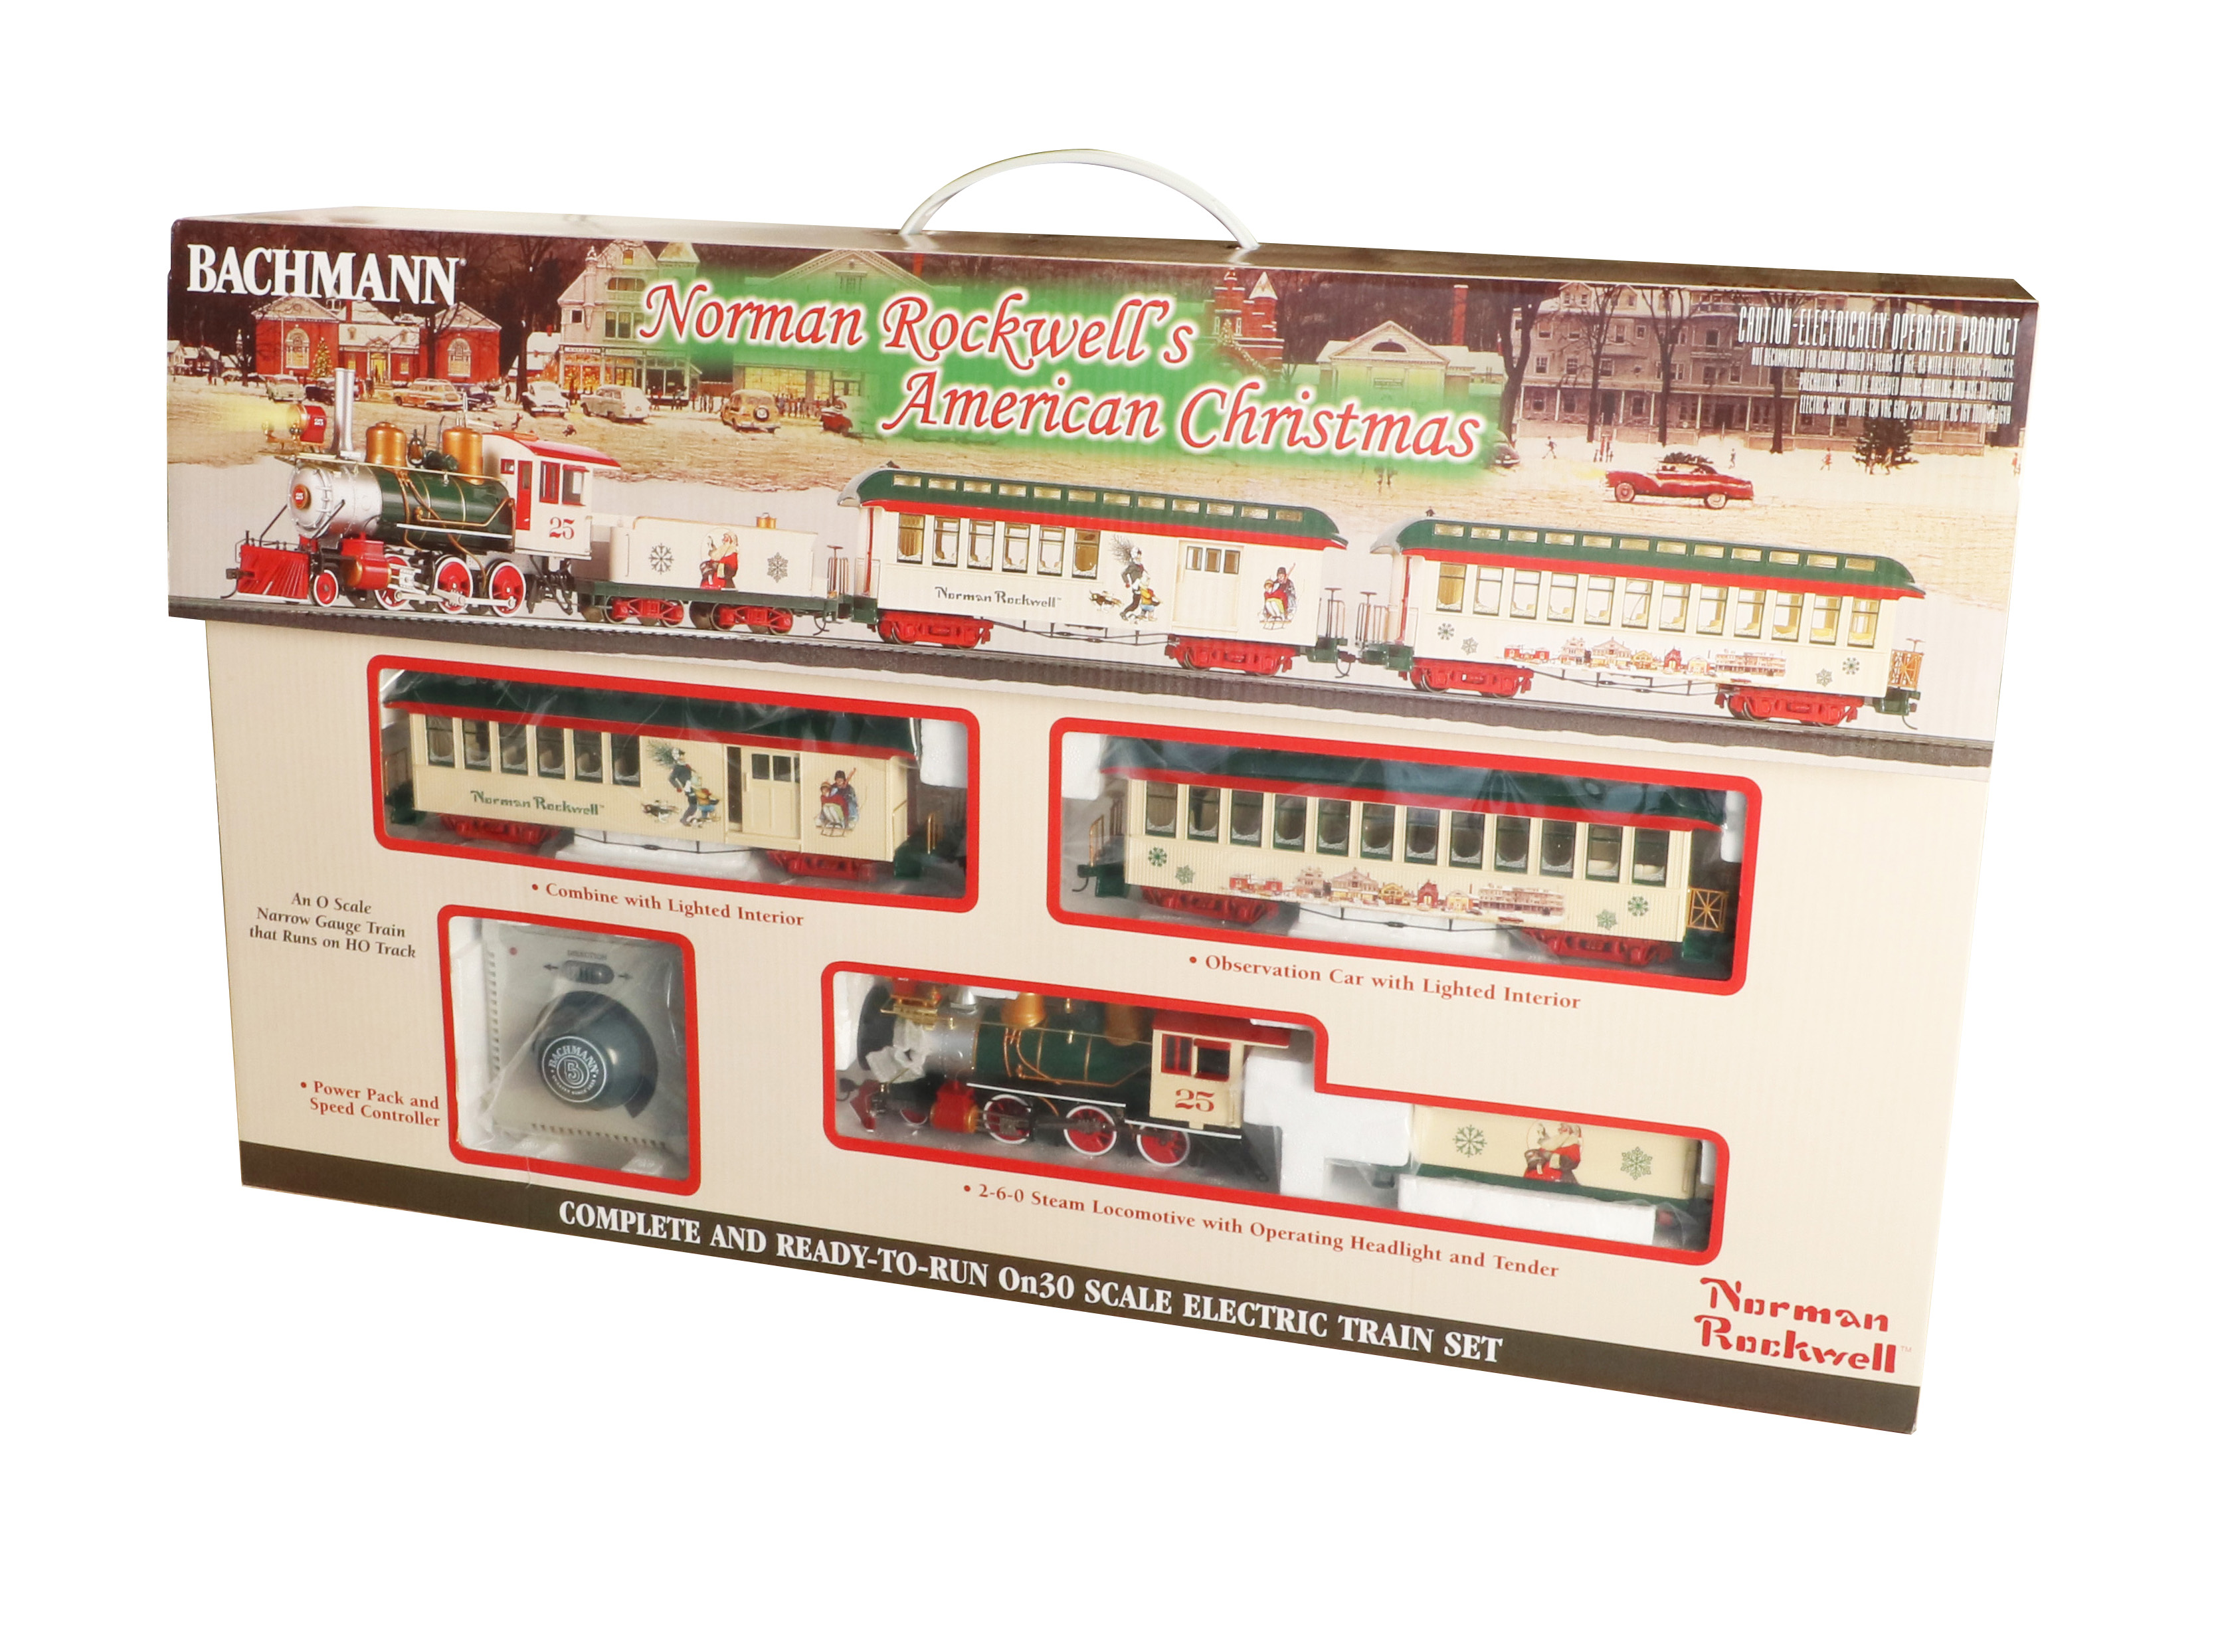 Bachmann 25023 On30 Train Set Norman Rockwell's American Christmas